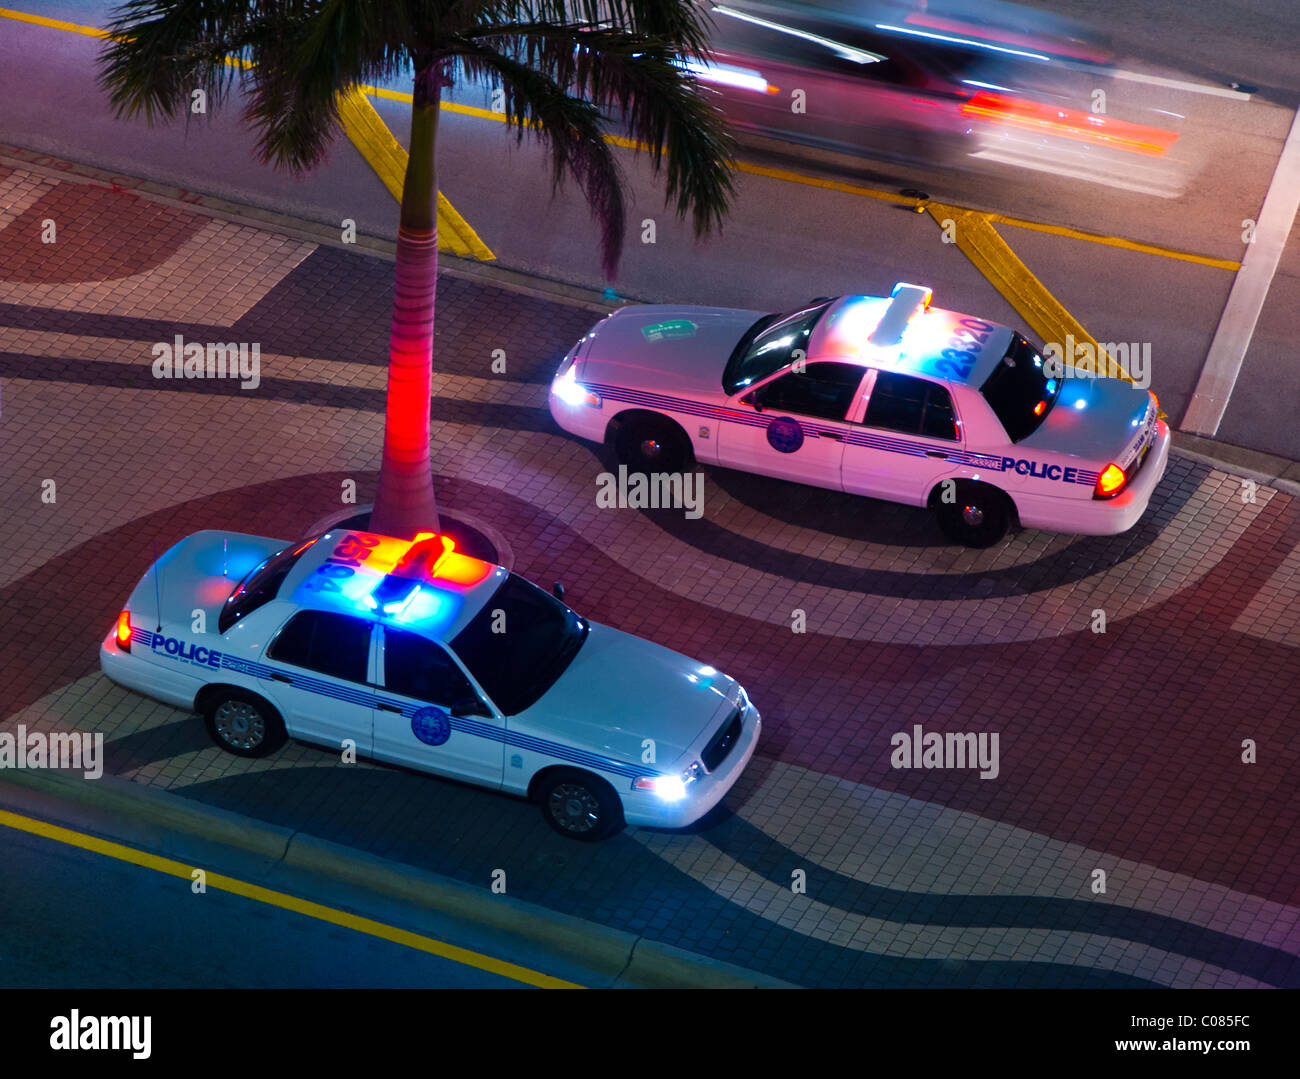 Police Cars Stock Photos & Police Cars Stock Images - Alamy